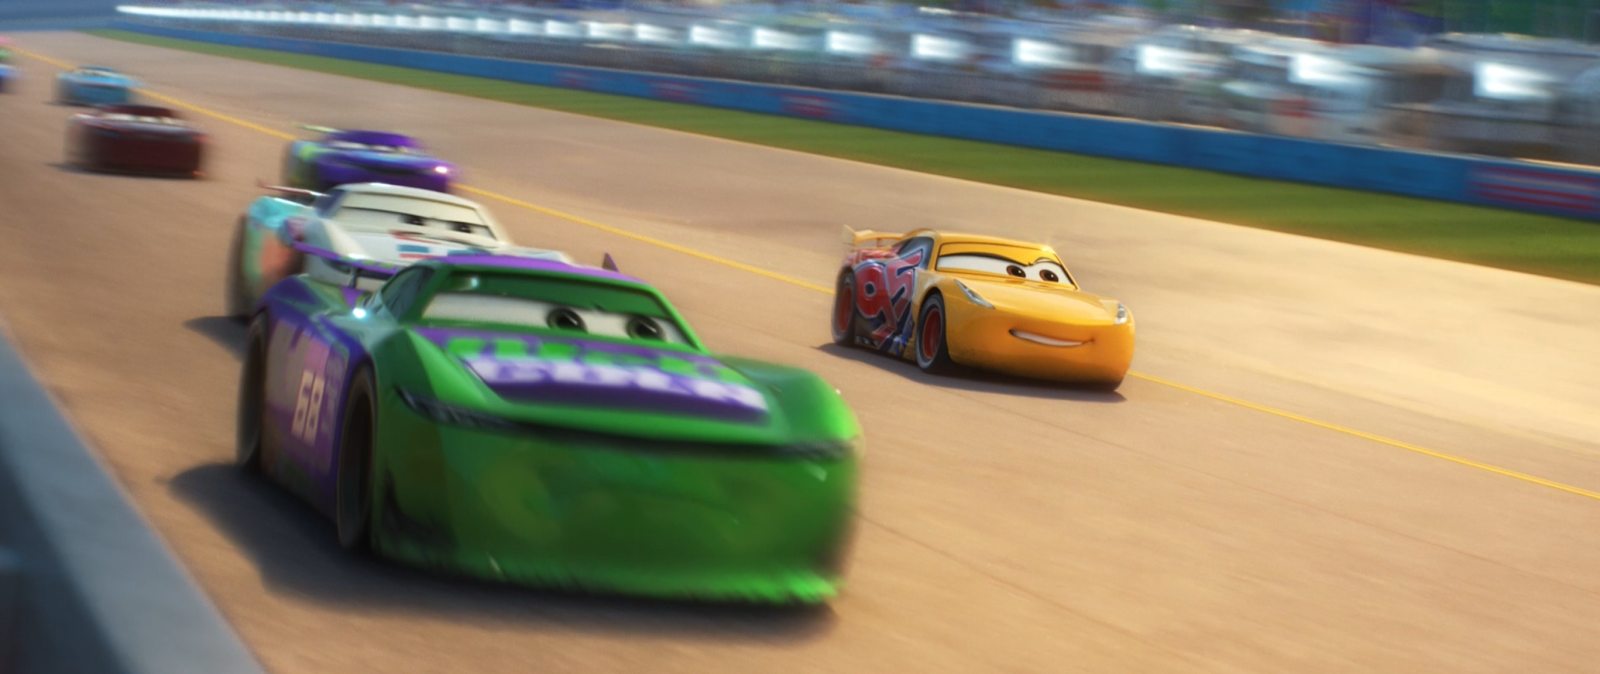 Cars 3: H.J. Hollis (N20 Cola)